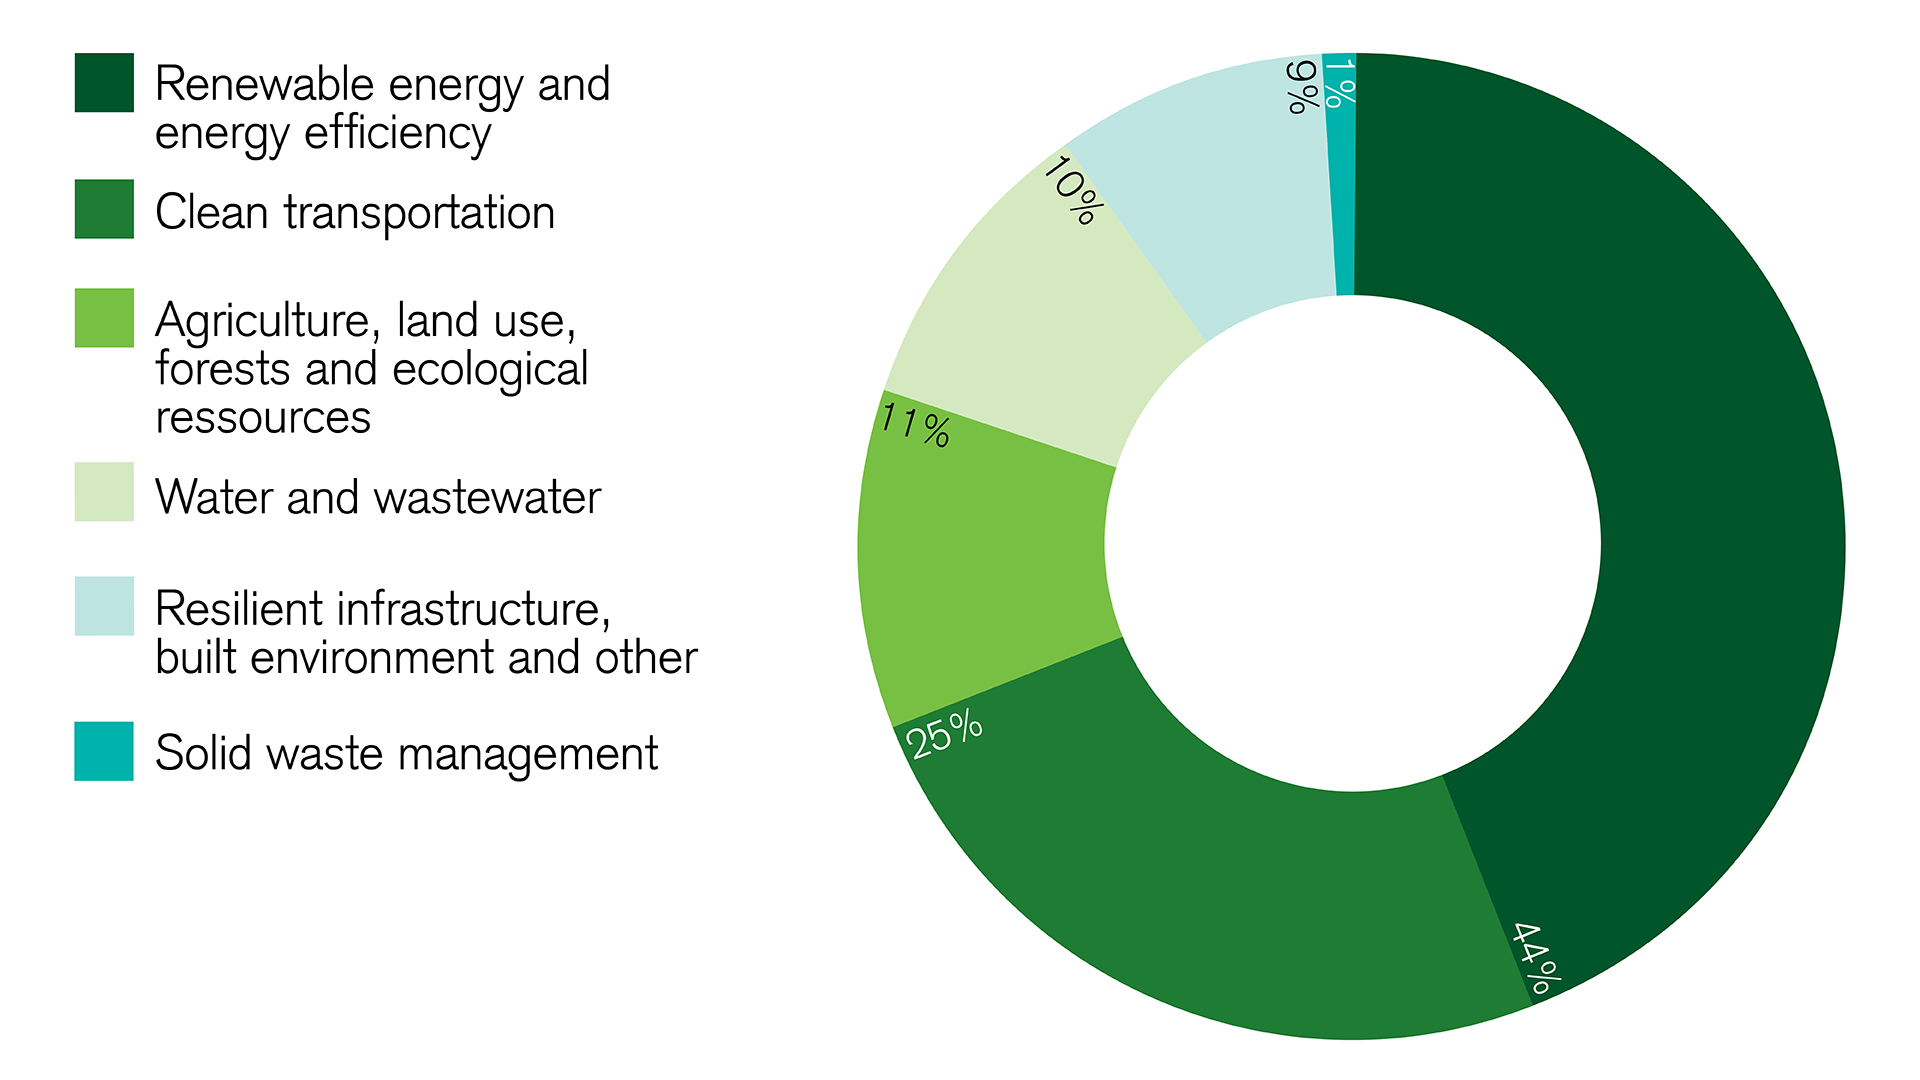 impact-investments-in-green-bonds-went-to-renewable-energy-in-2018